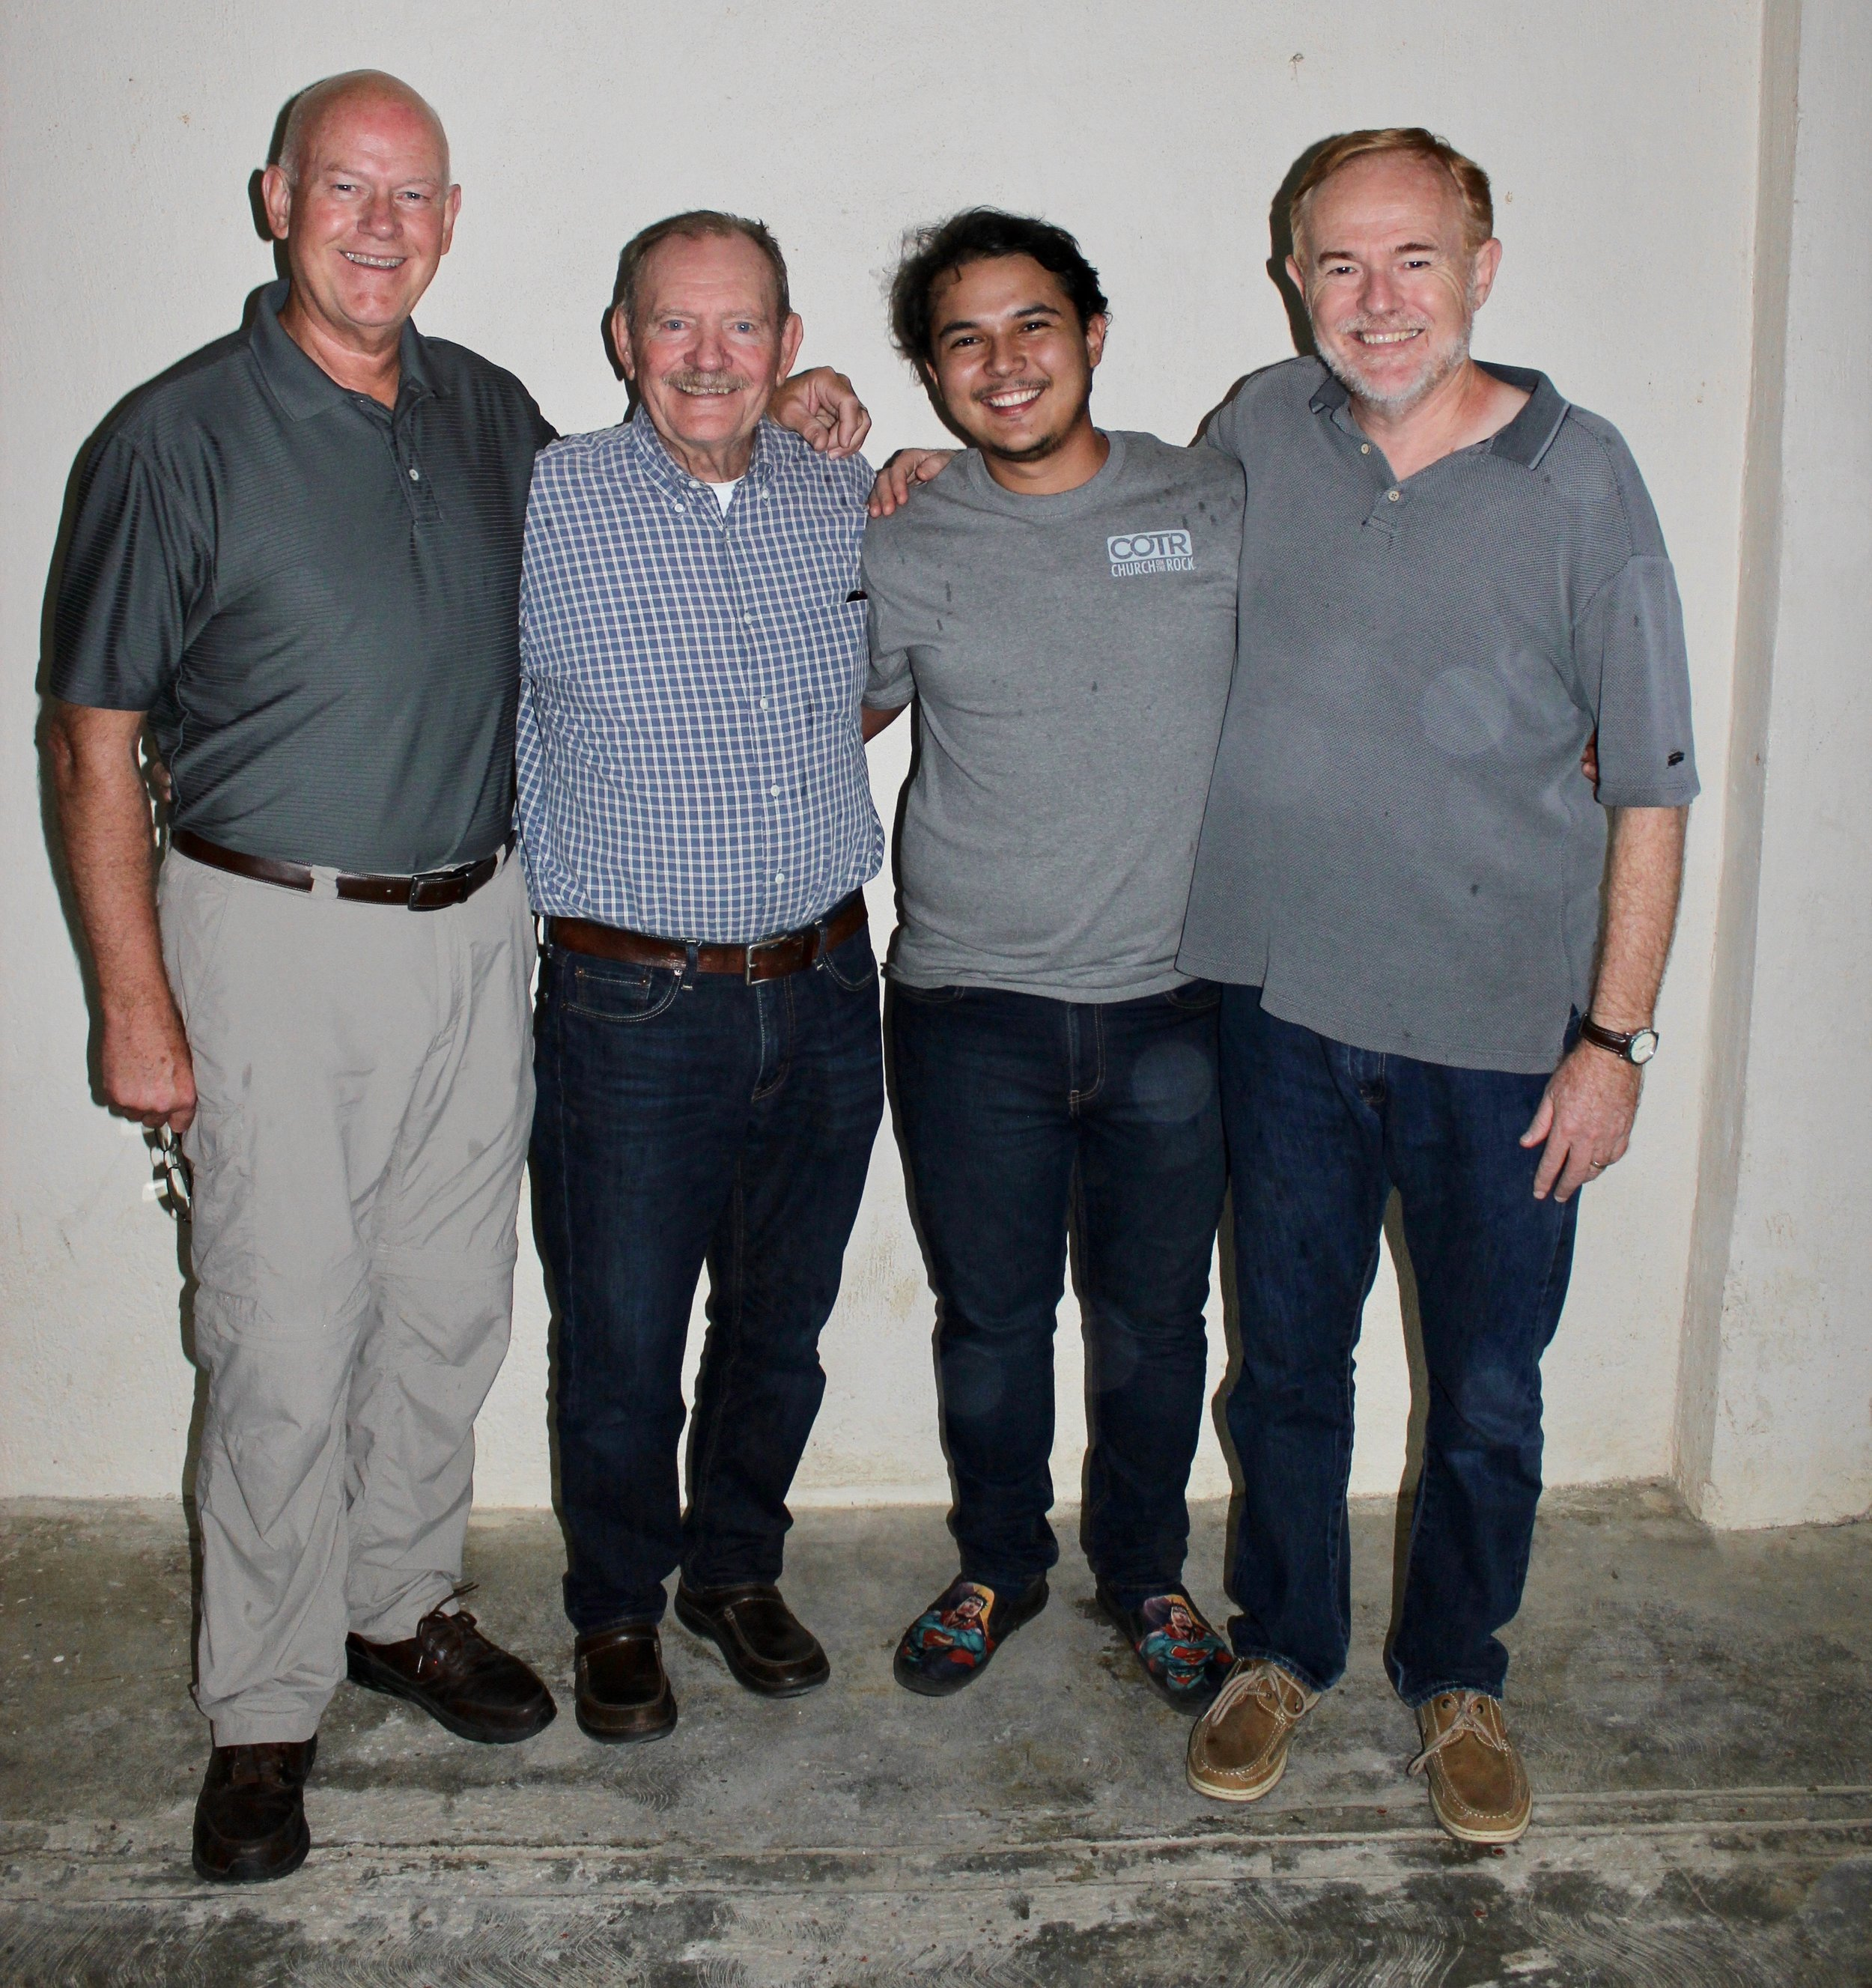 IBI Session II - Professors Leroy Curtis and Chuck Bass led the August session of IBI with Luis Pinto as translator. Many thanks to these men who use the gifts God has given them for His glory!